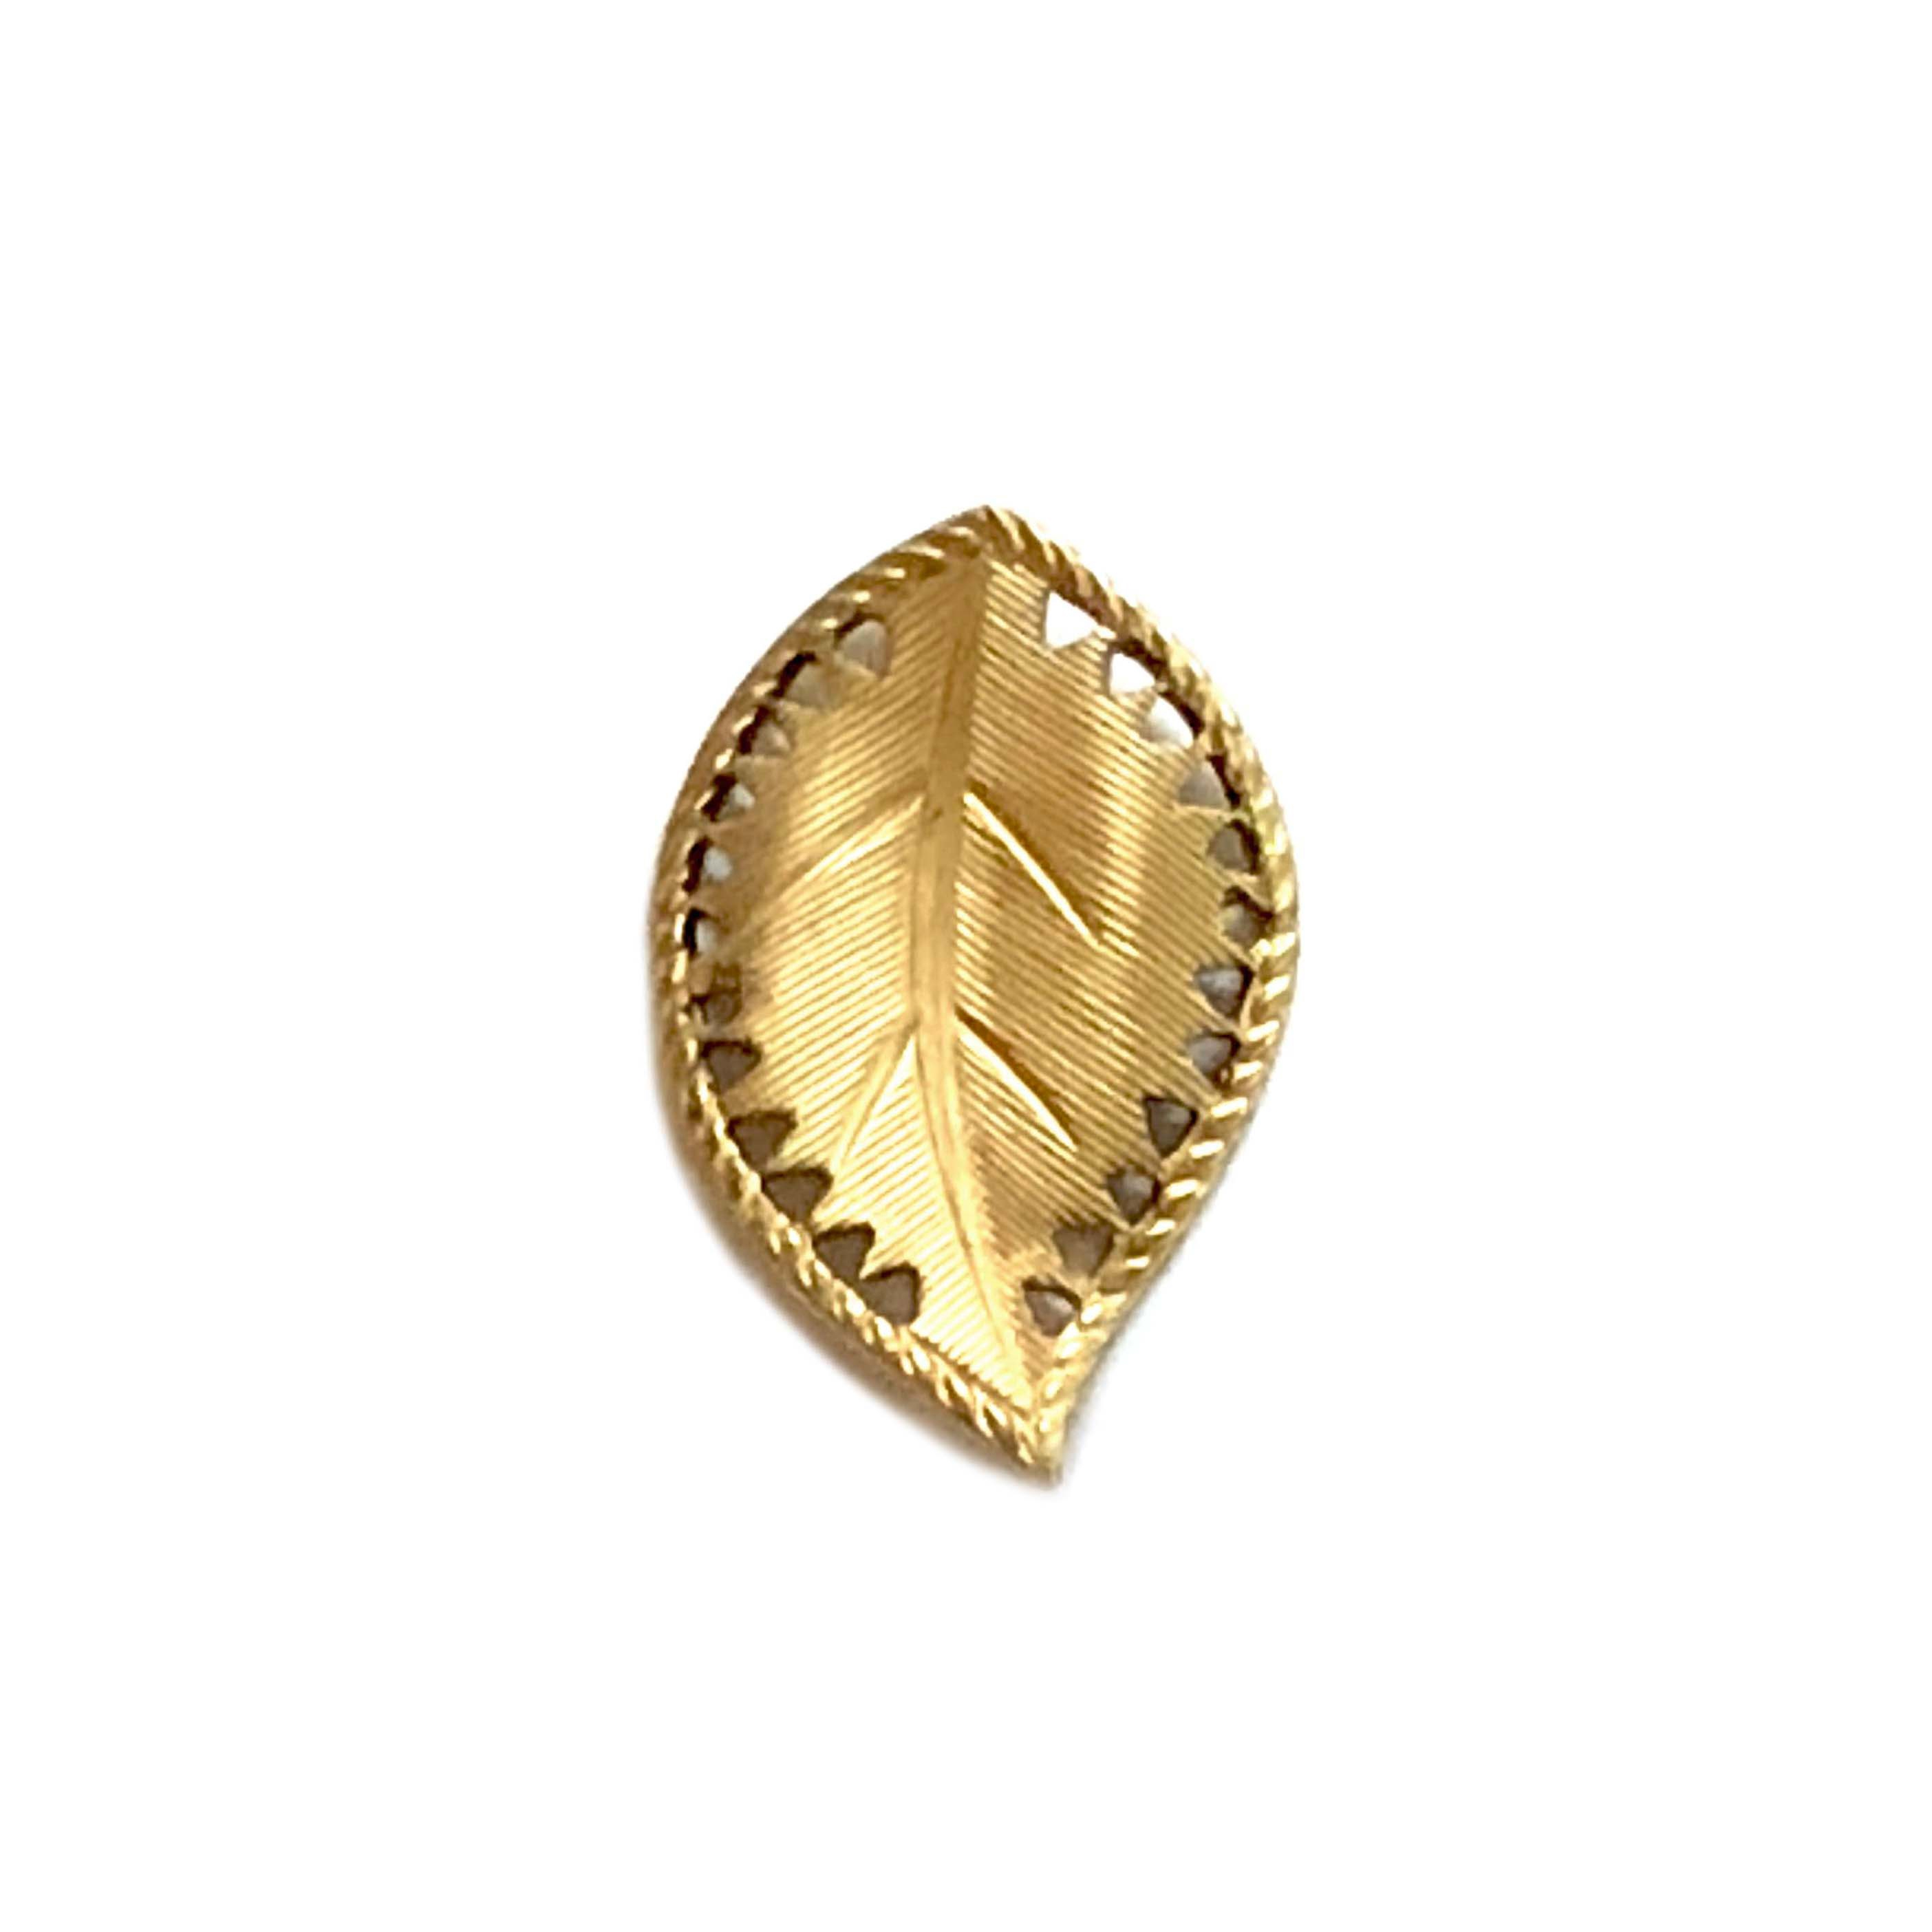 brass leaves, beading leaf, jewelry supplies, 29mm, 03394, nickel free, US made, bsueboutiques, leaf stampings, pierced leaves, beading leaves, curved leaves, right facing leaves, patterned leaves, vintage jewelry supplies